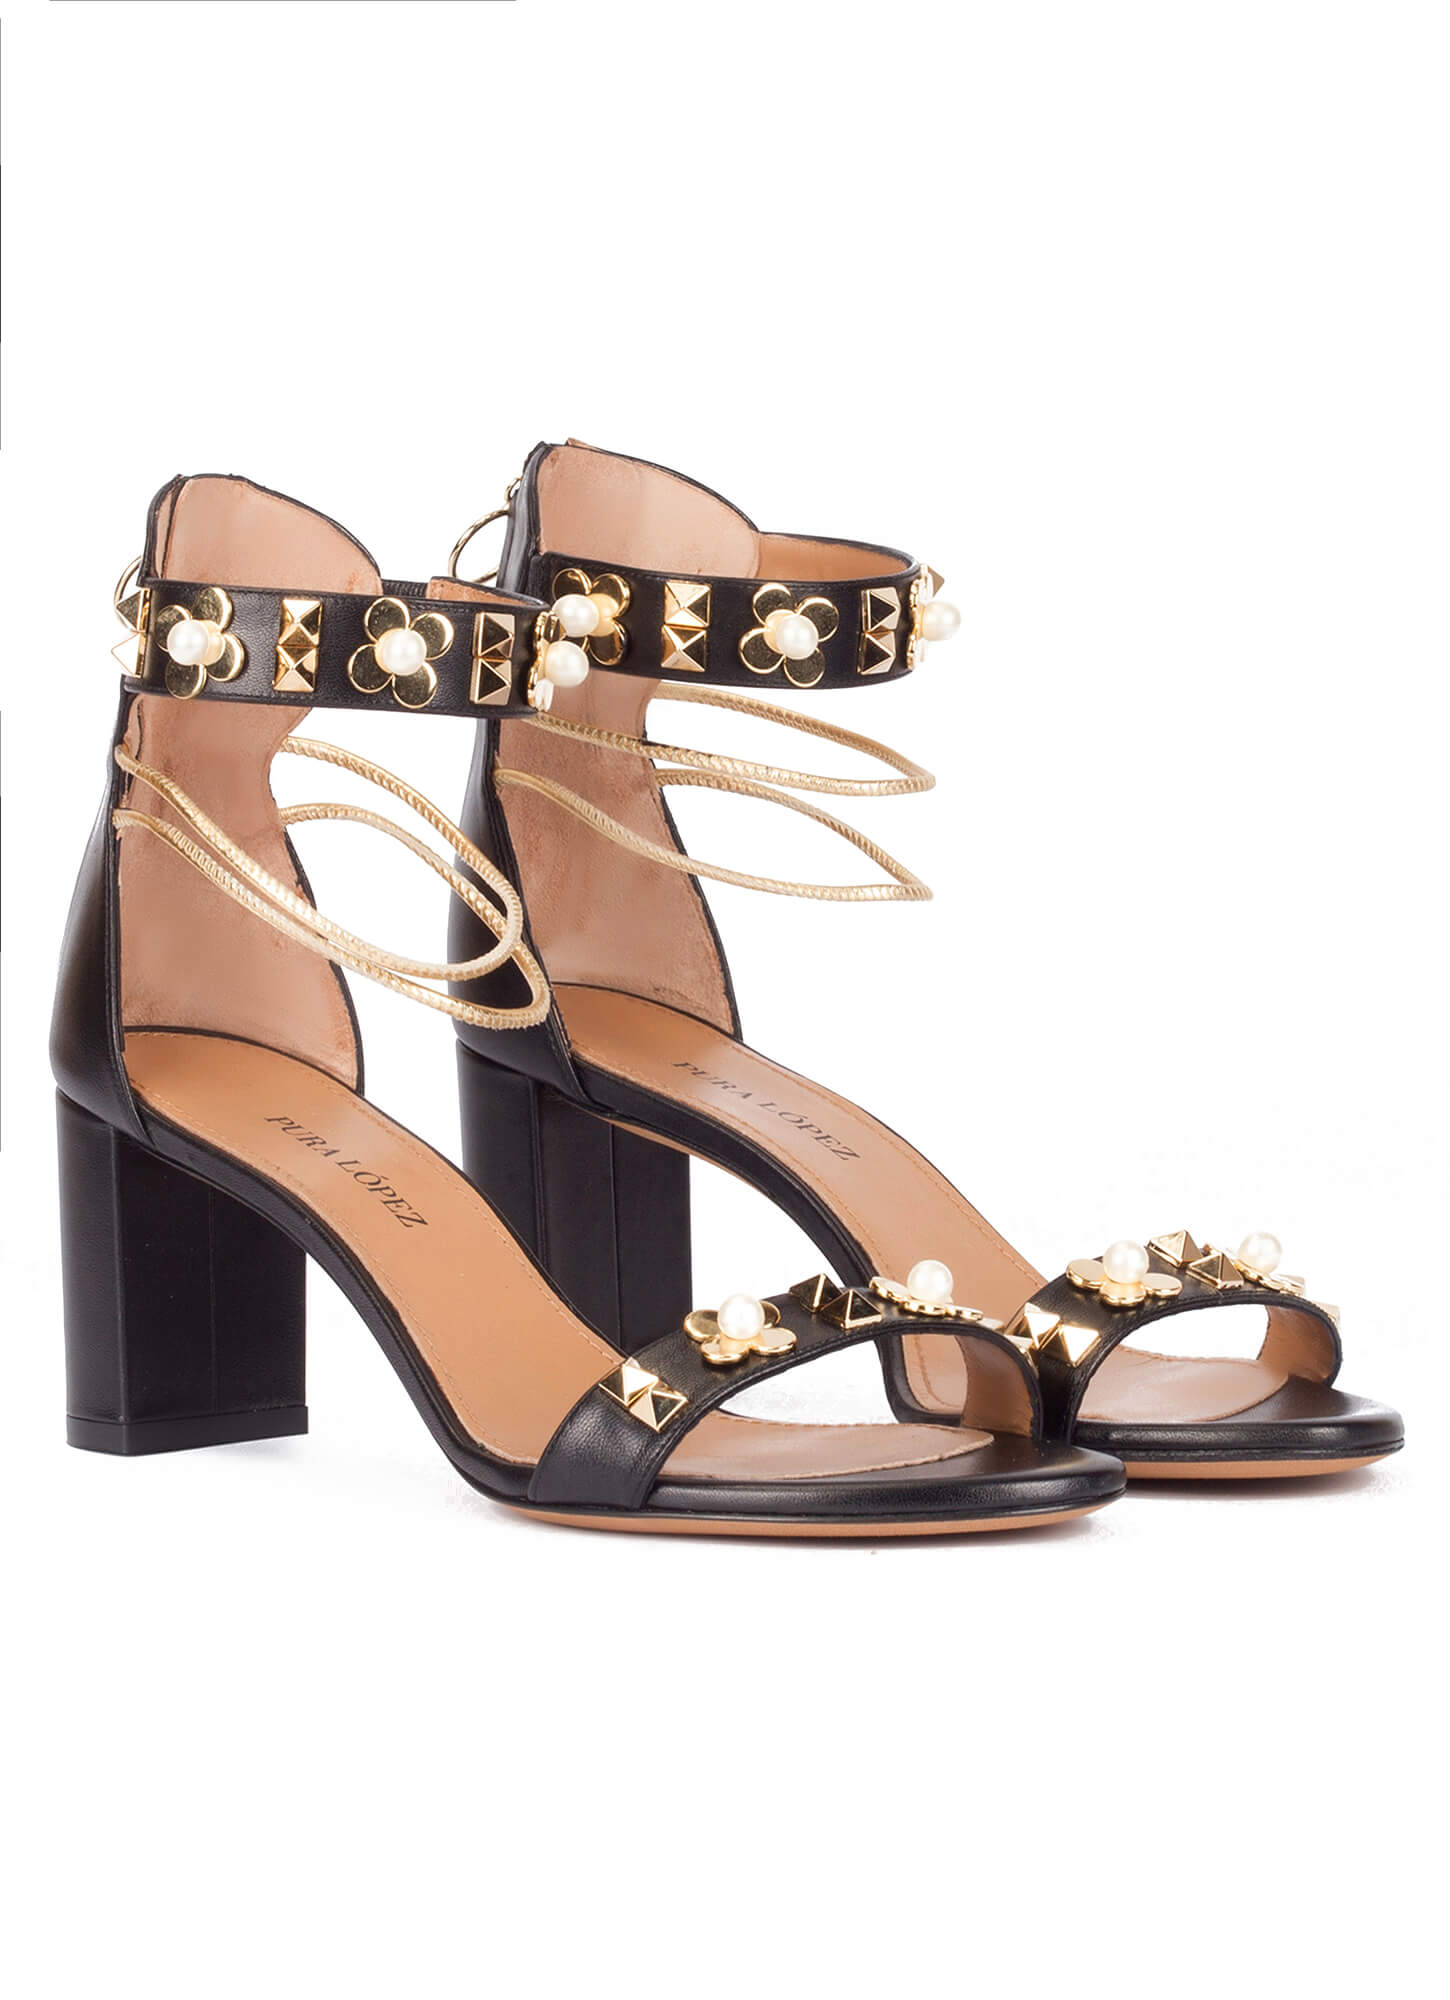 165d79a817de Black leather mid block heel sandals with ankle strap. Orabela Pura López